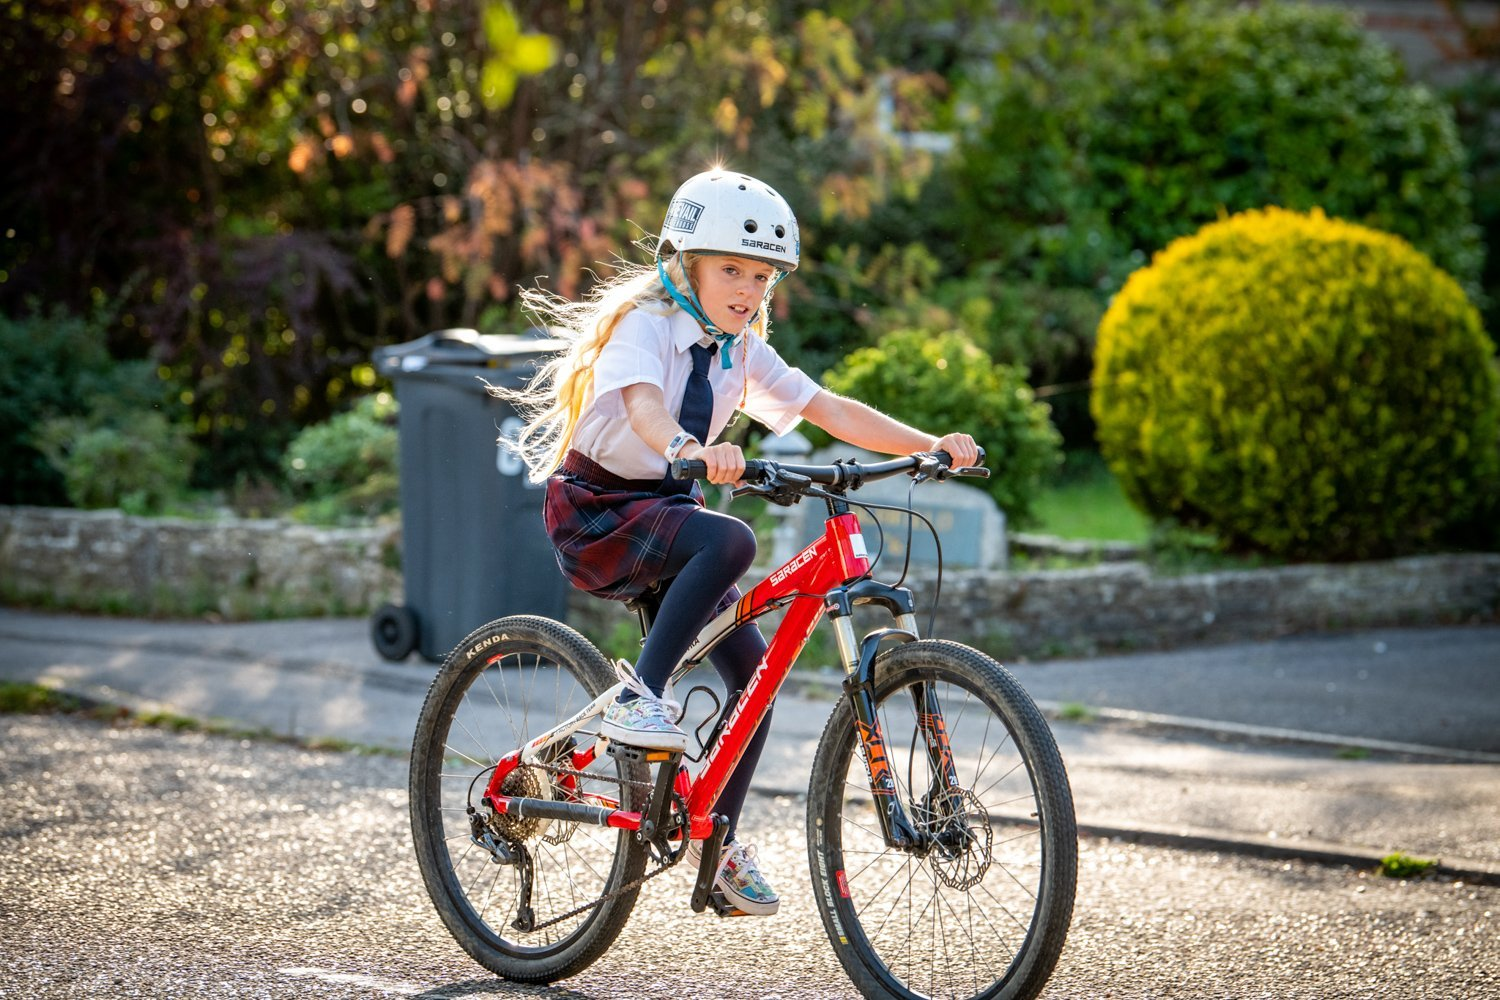 3 easy steps to get your kid's bike ready before they ride to school